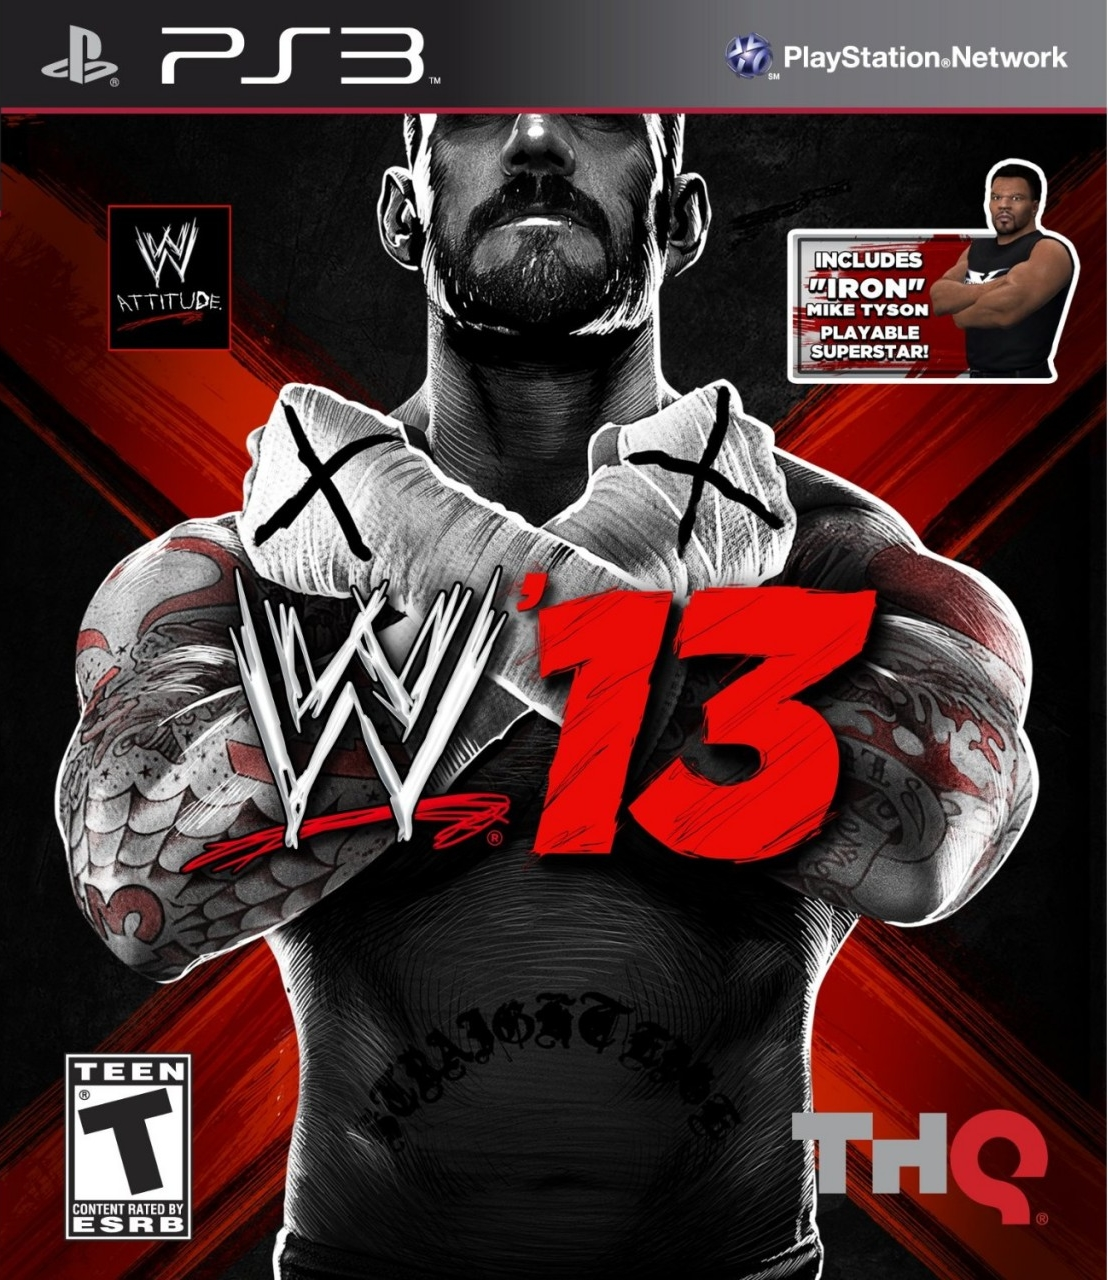 How to download wwe network on ps3